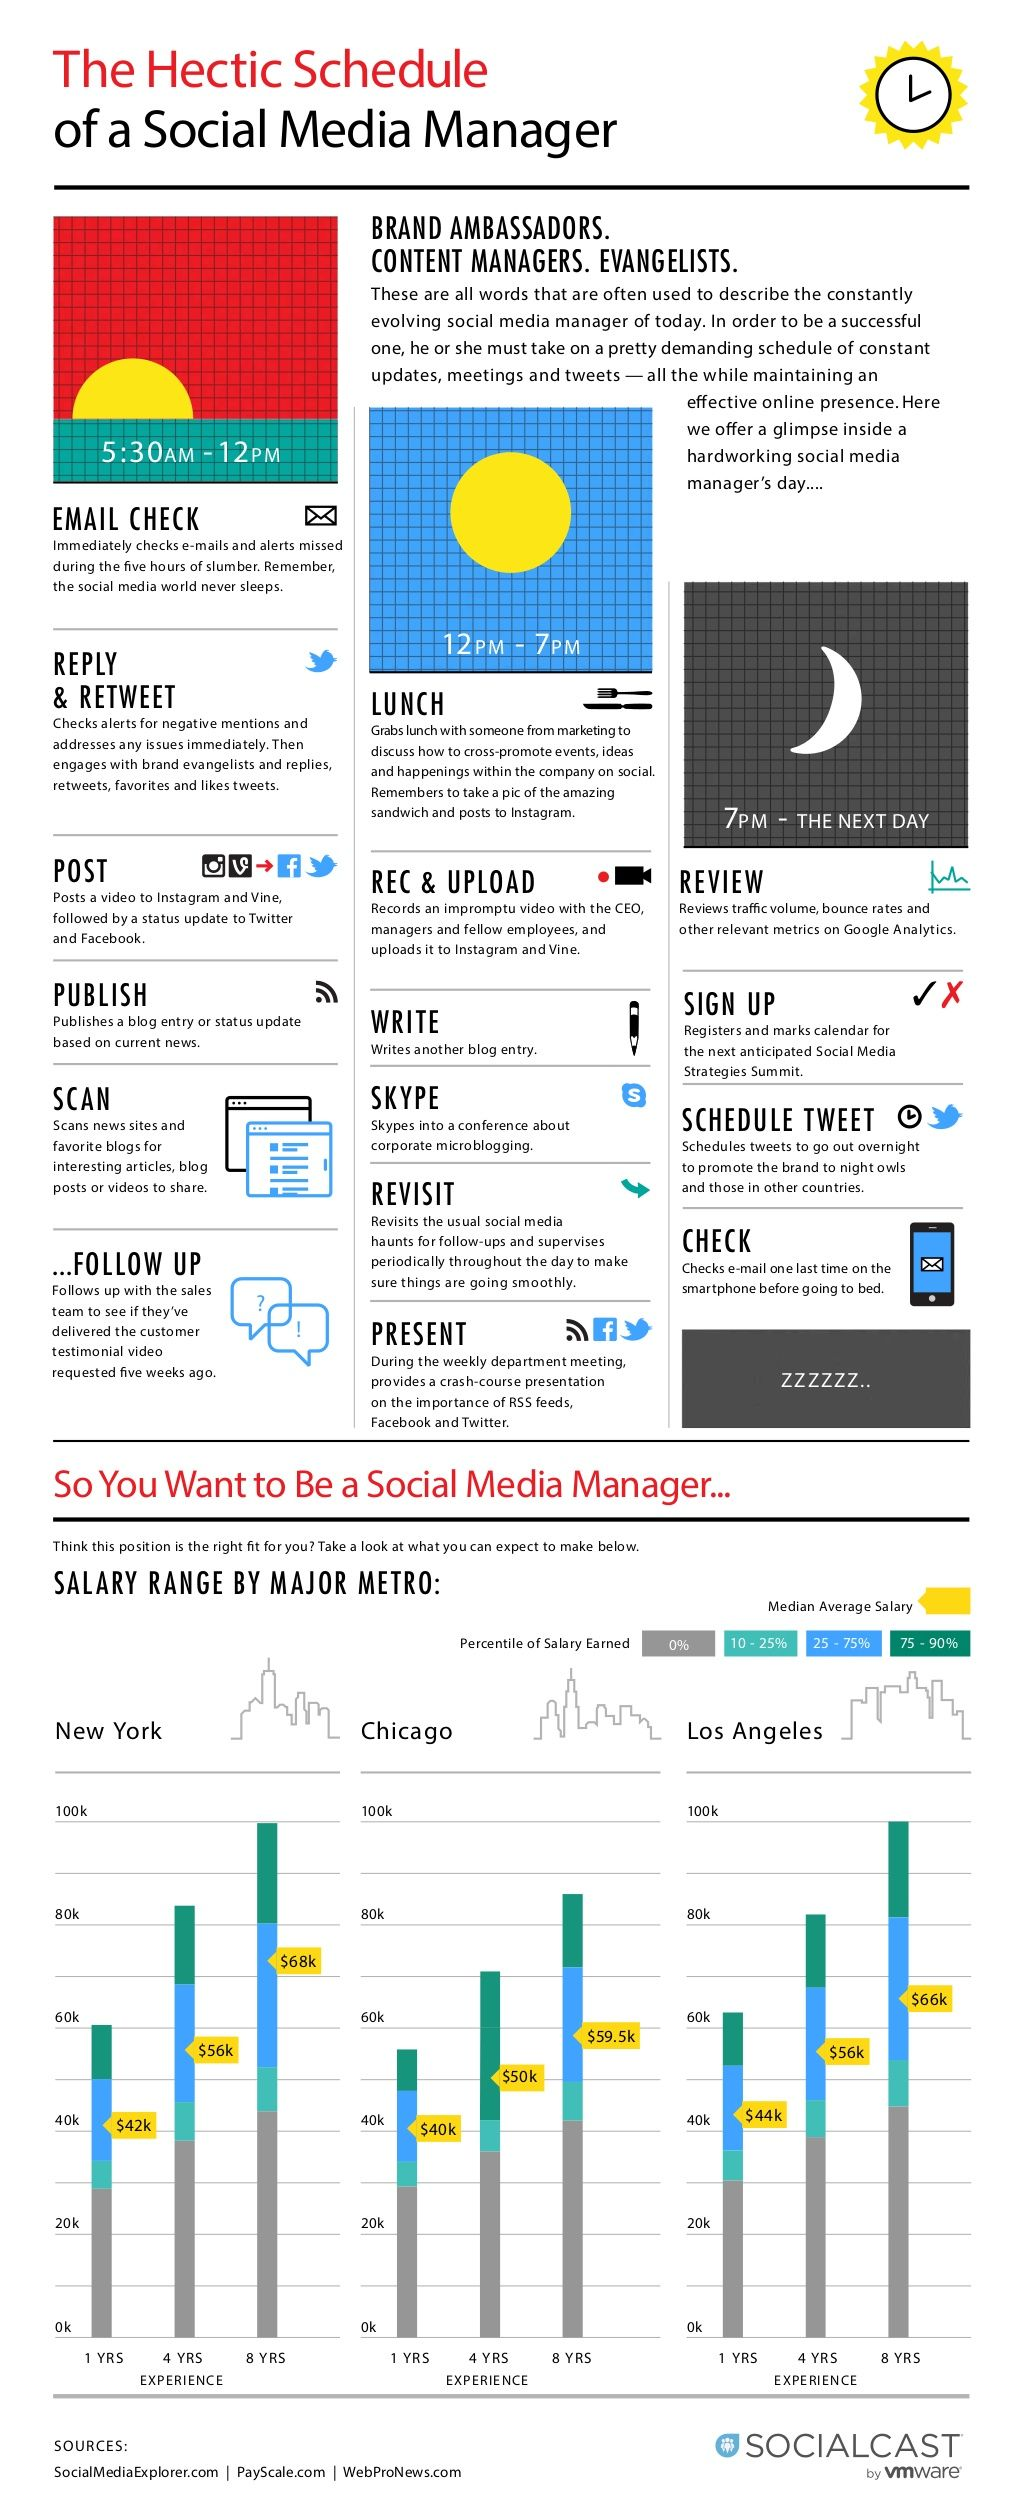 The Hectic Schedule of a Social Media Manager